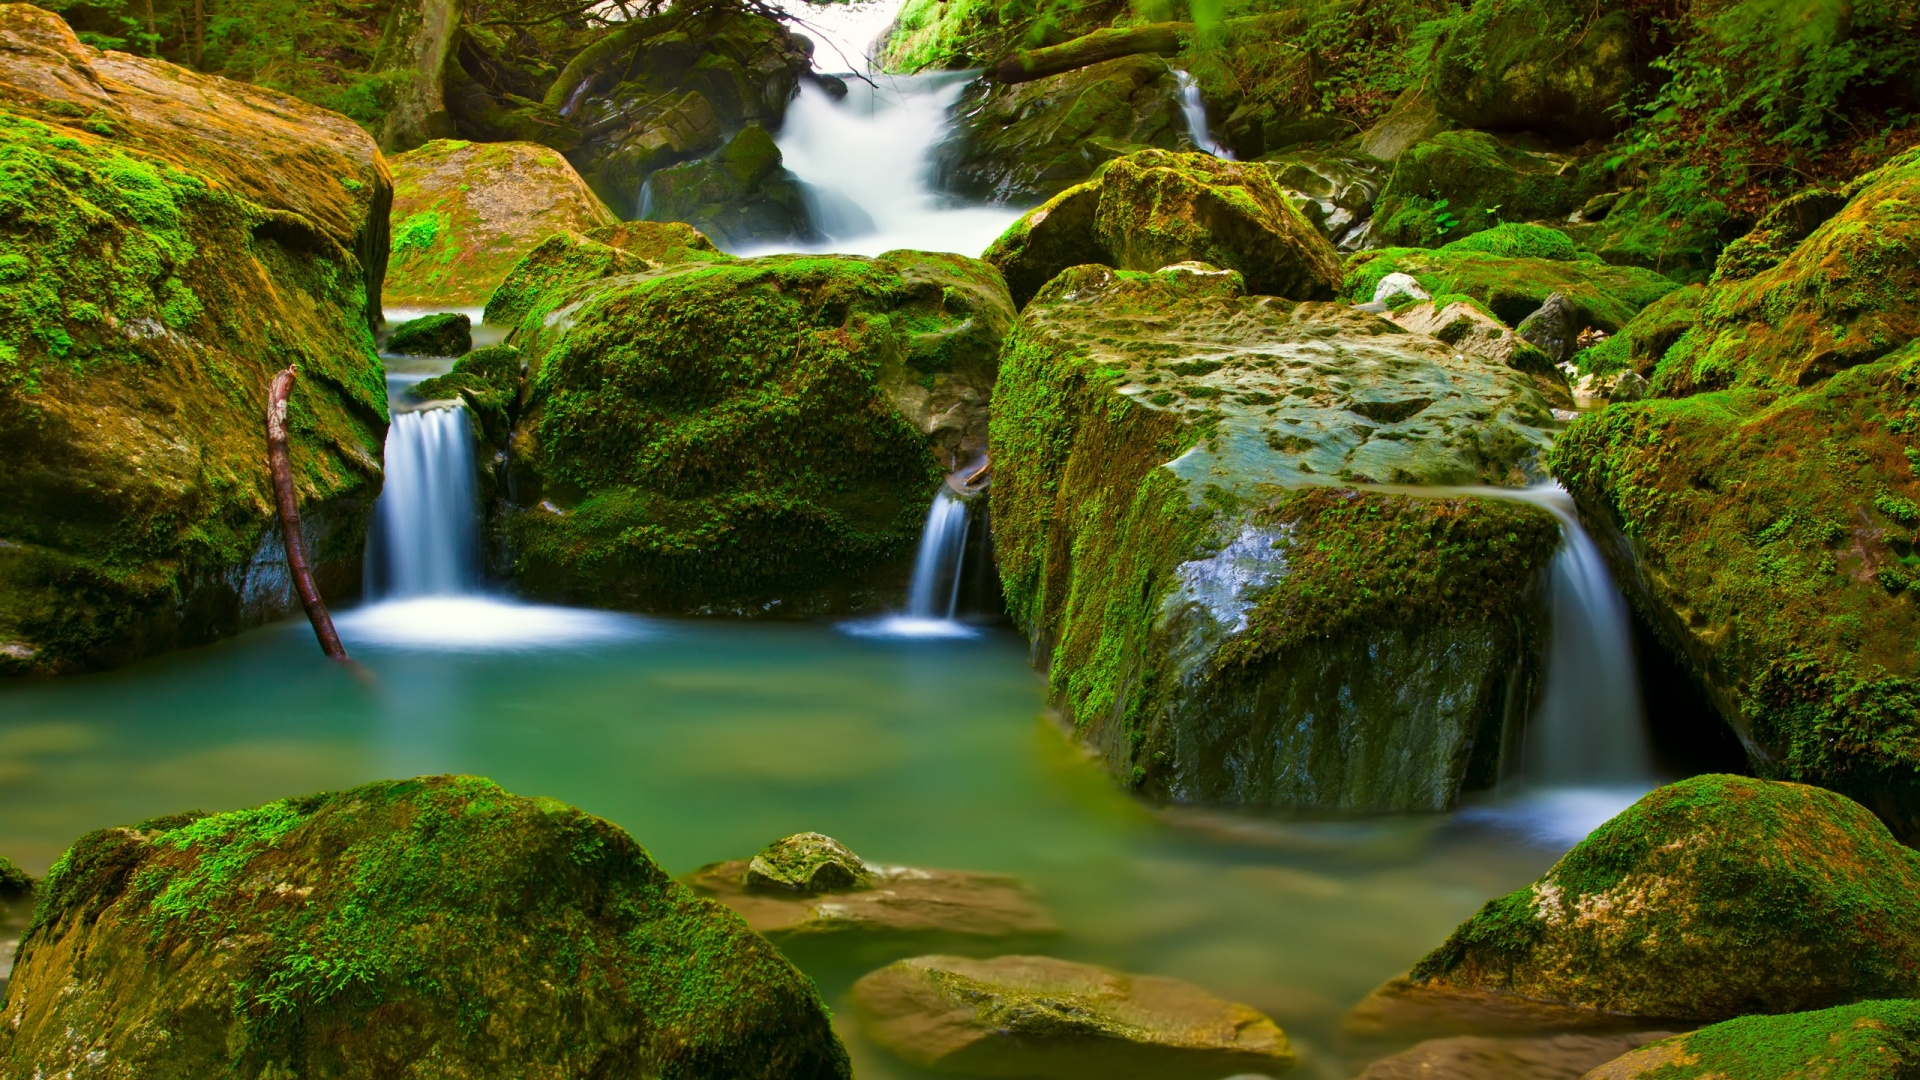 1920x1080 Hd Wallpapers Waterfall: 1920x1080 Waterfall Desktop PC And Mac Wallpaper